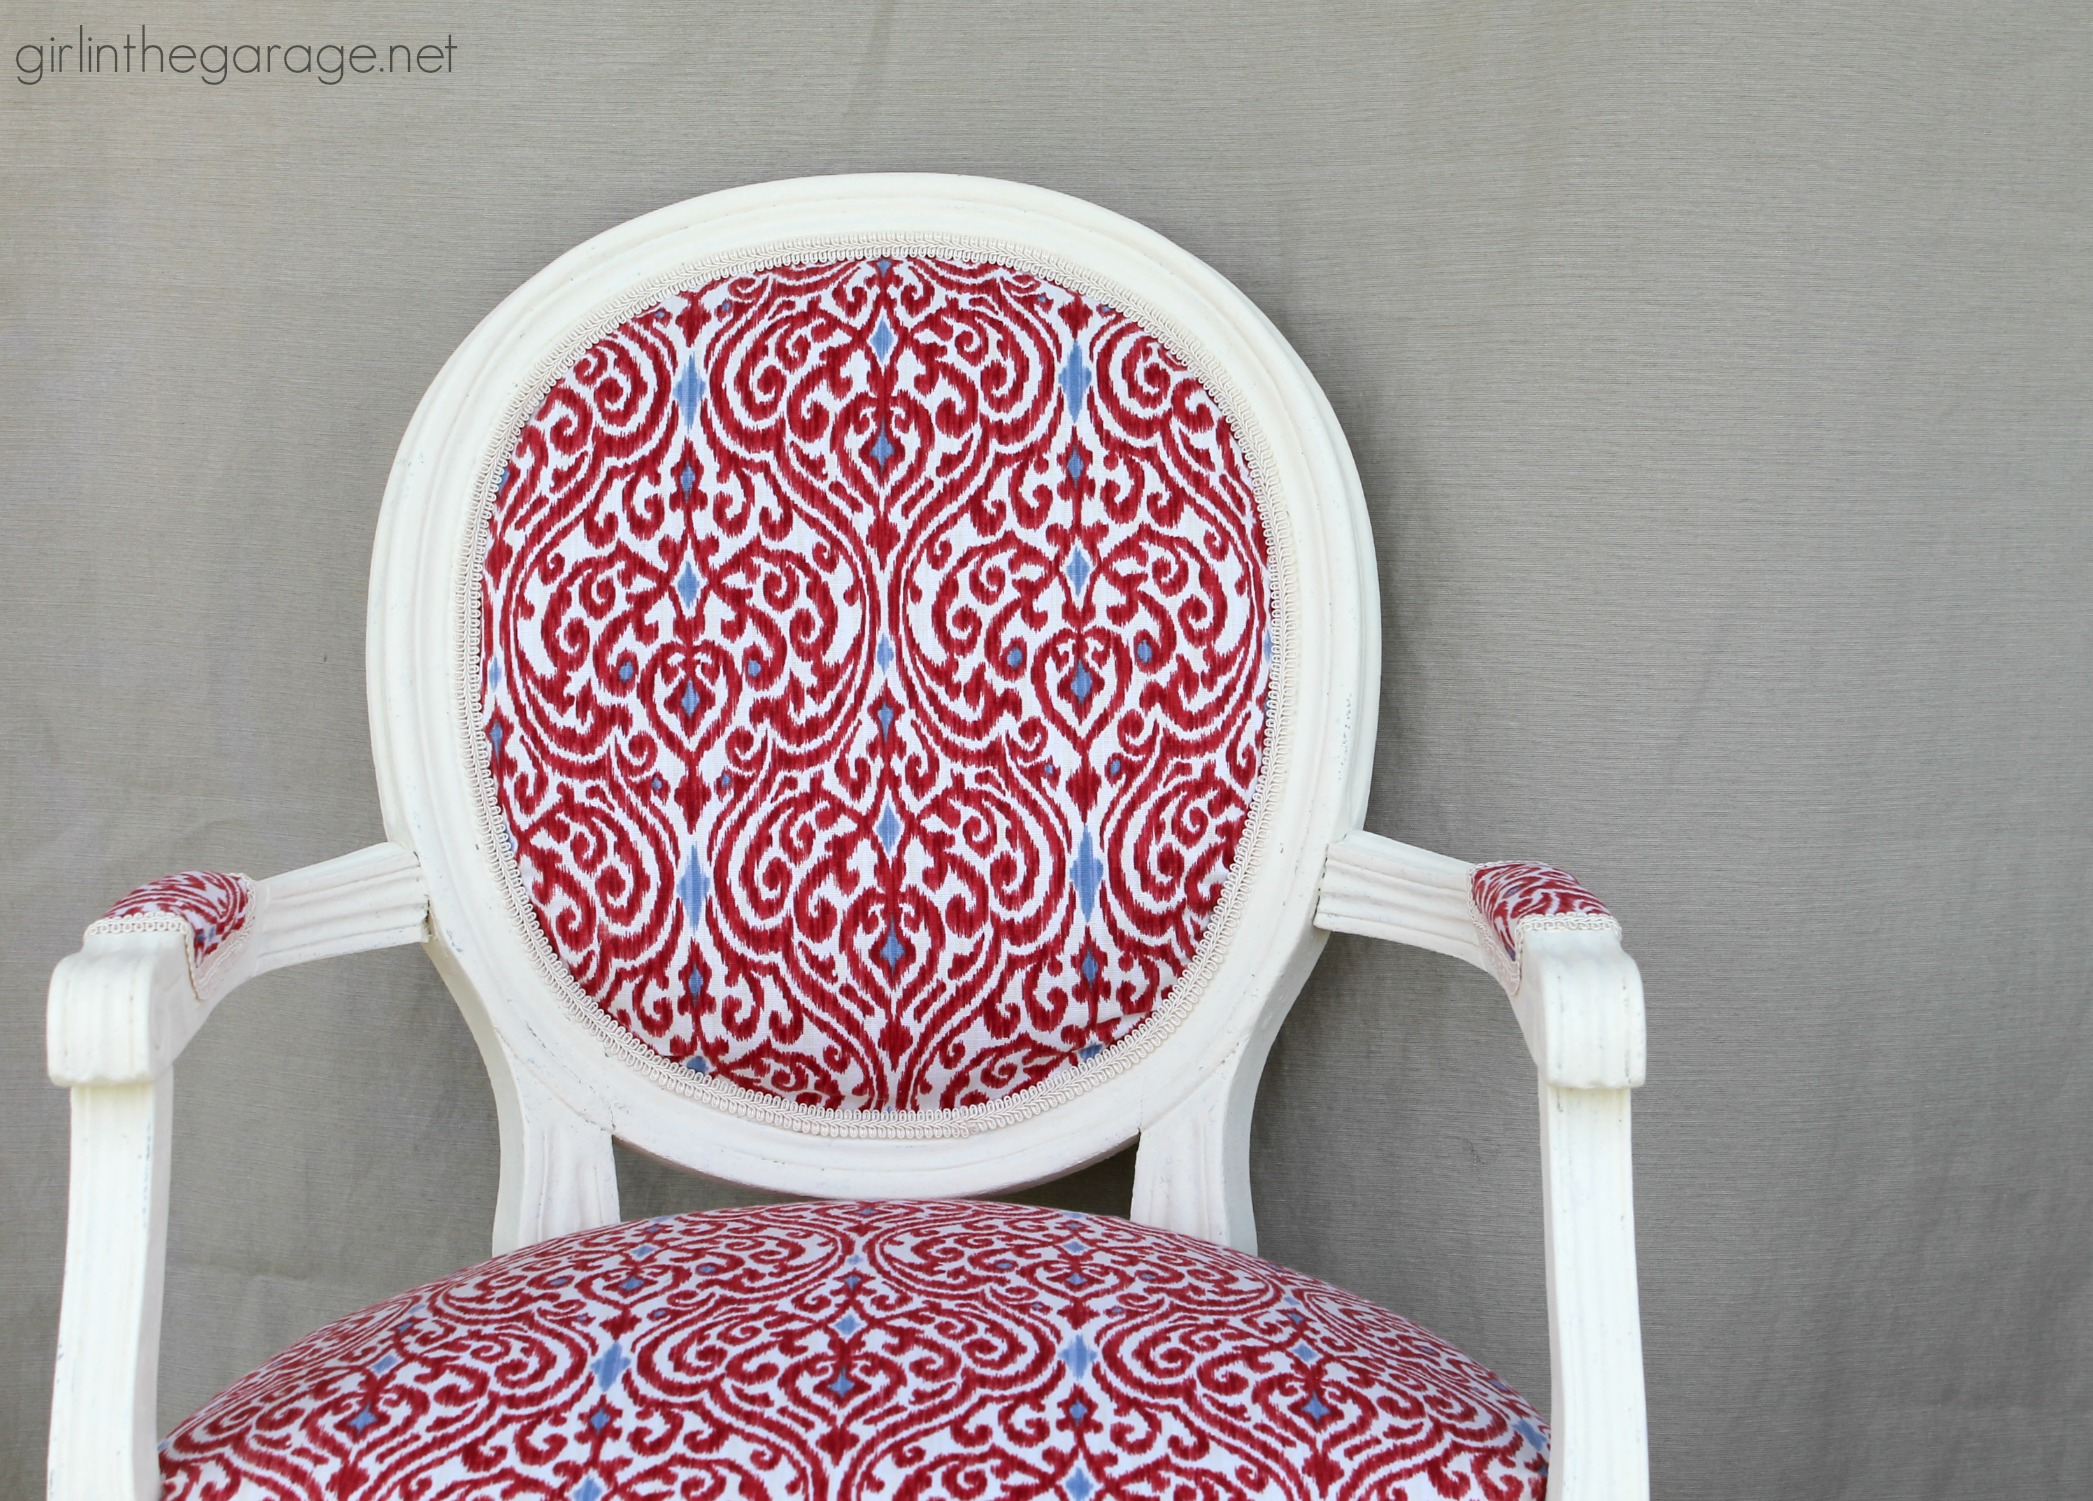 DIY Reupholstered Chair - Girl in the Garage